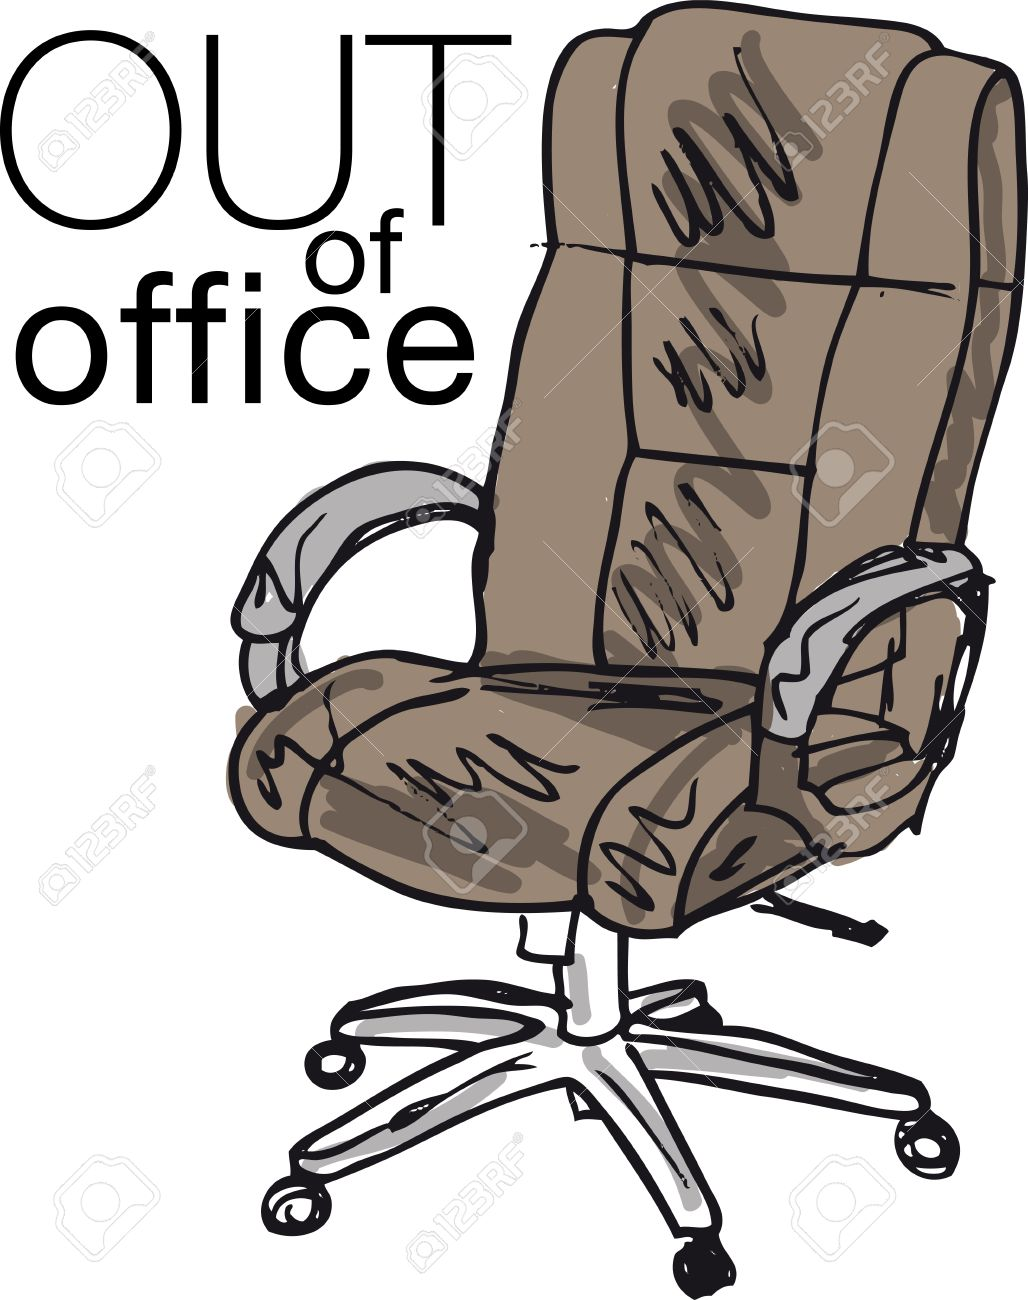 Top Out Of Office. Vector Illustration Royalty Free Cliparts, Vectors  OT73